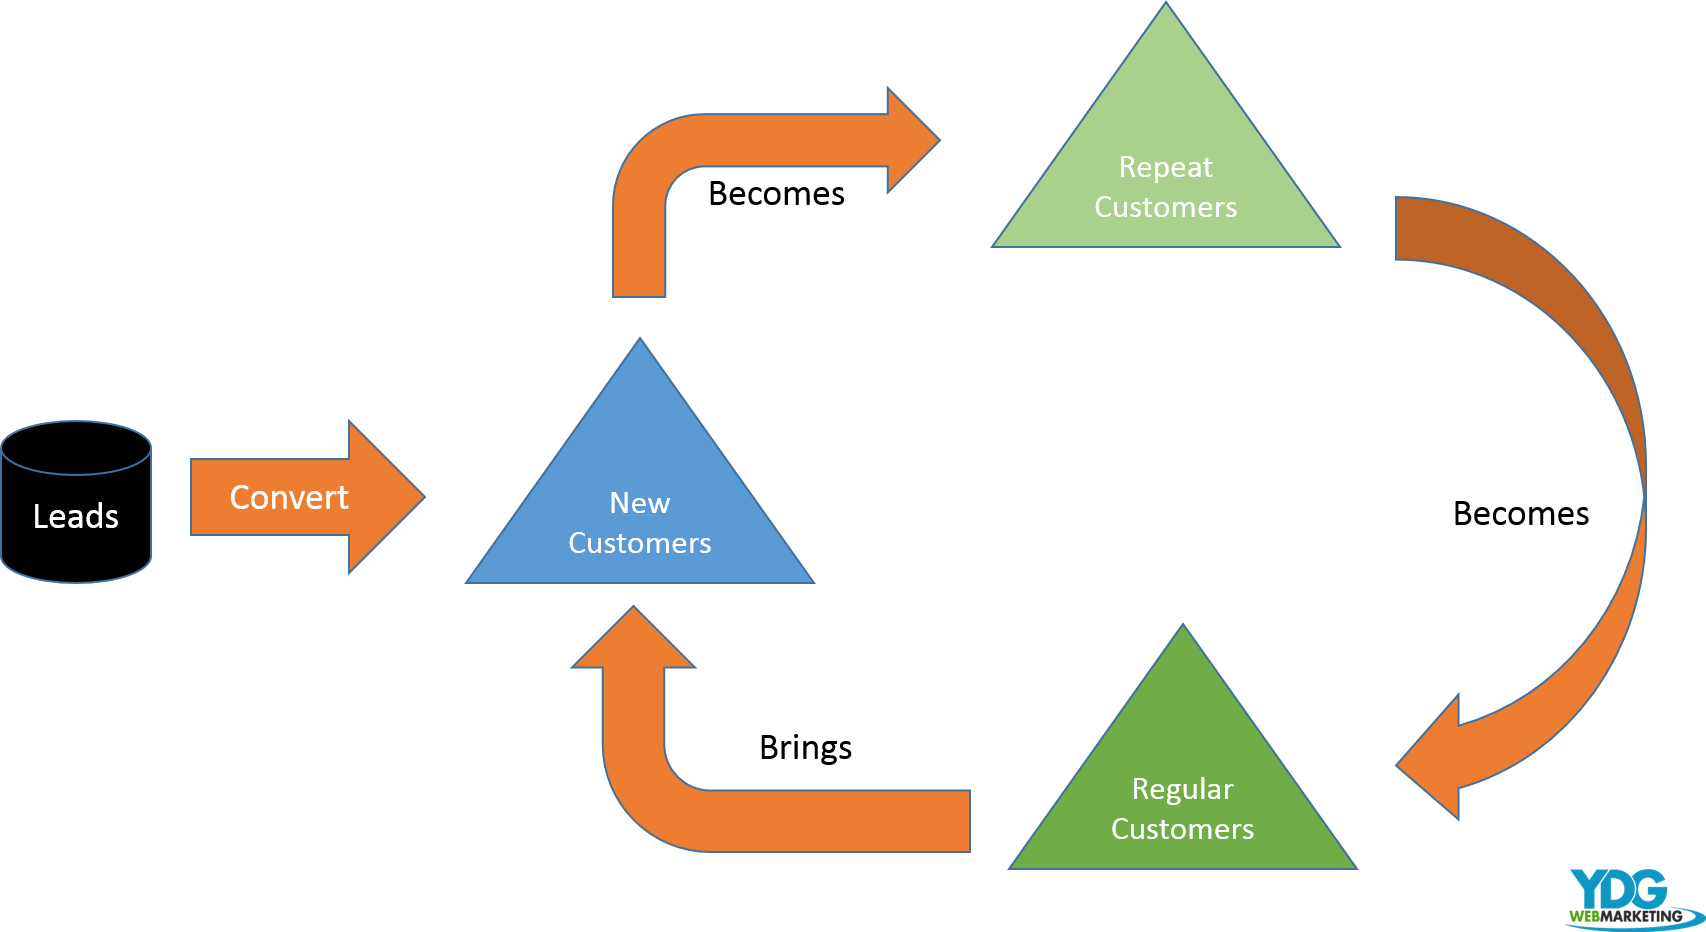 YDG Marketing Leads To Repeat Customers